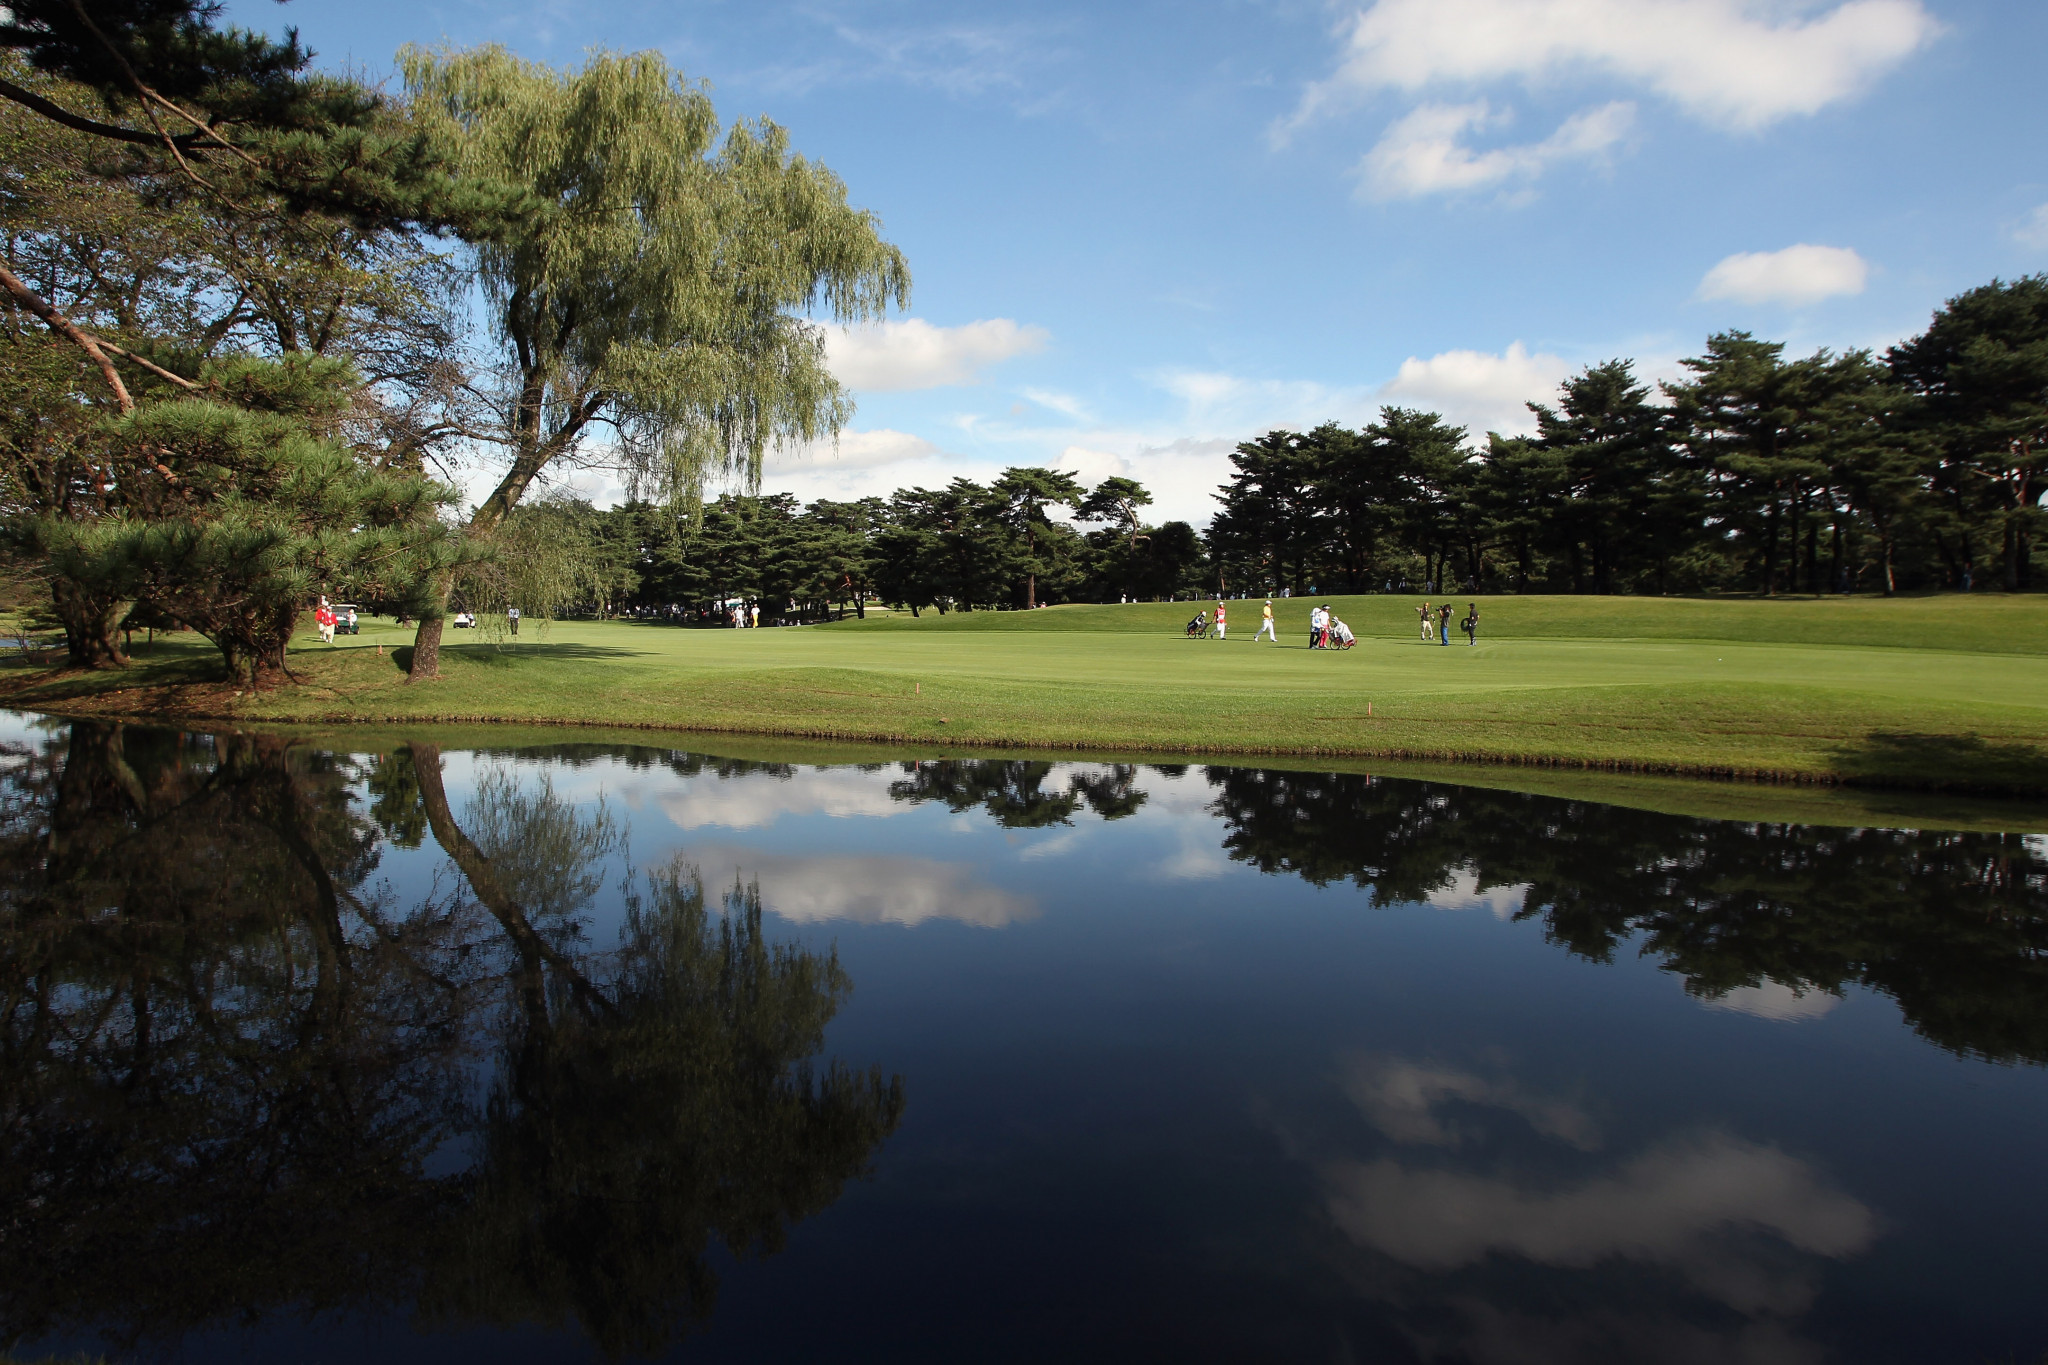 Tokyo 2020 golf course set to be put to test with hosting of Japan Junior Championship